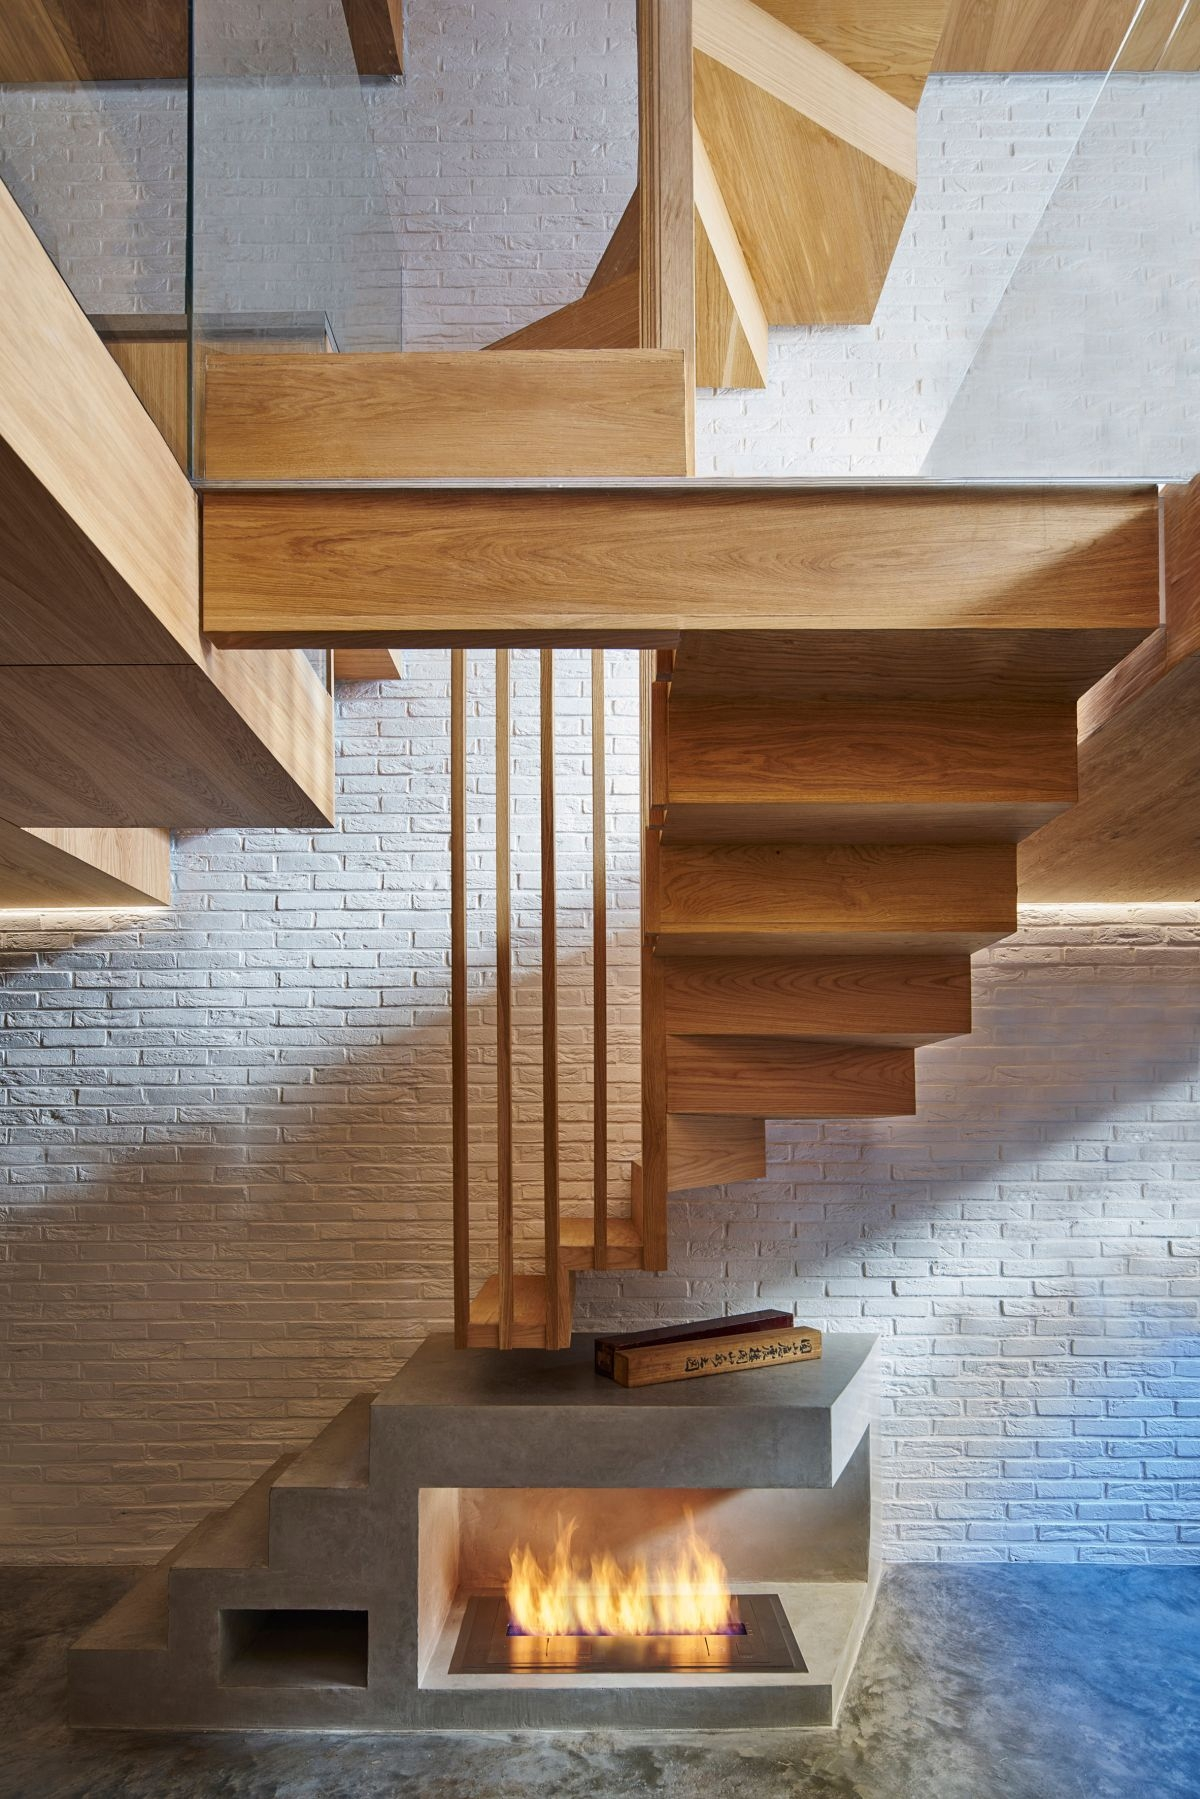 Cool Staircase Designs Guaranteed To Tickle Your Brain   Concrete And Wood Stairs   Concrete Wall   Separated   Concrete Building Interior   Glass Balustrade   White Riser Wood